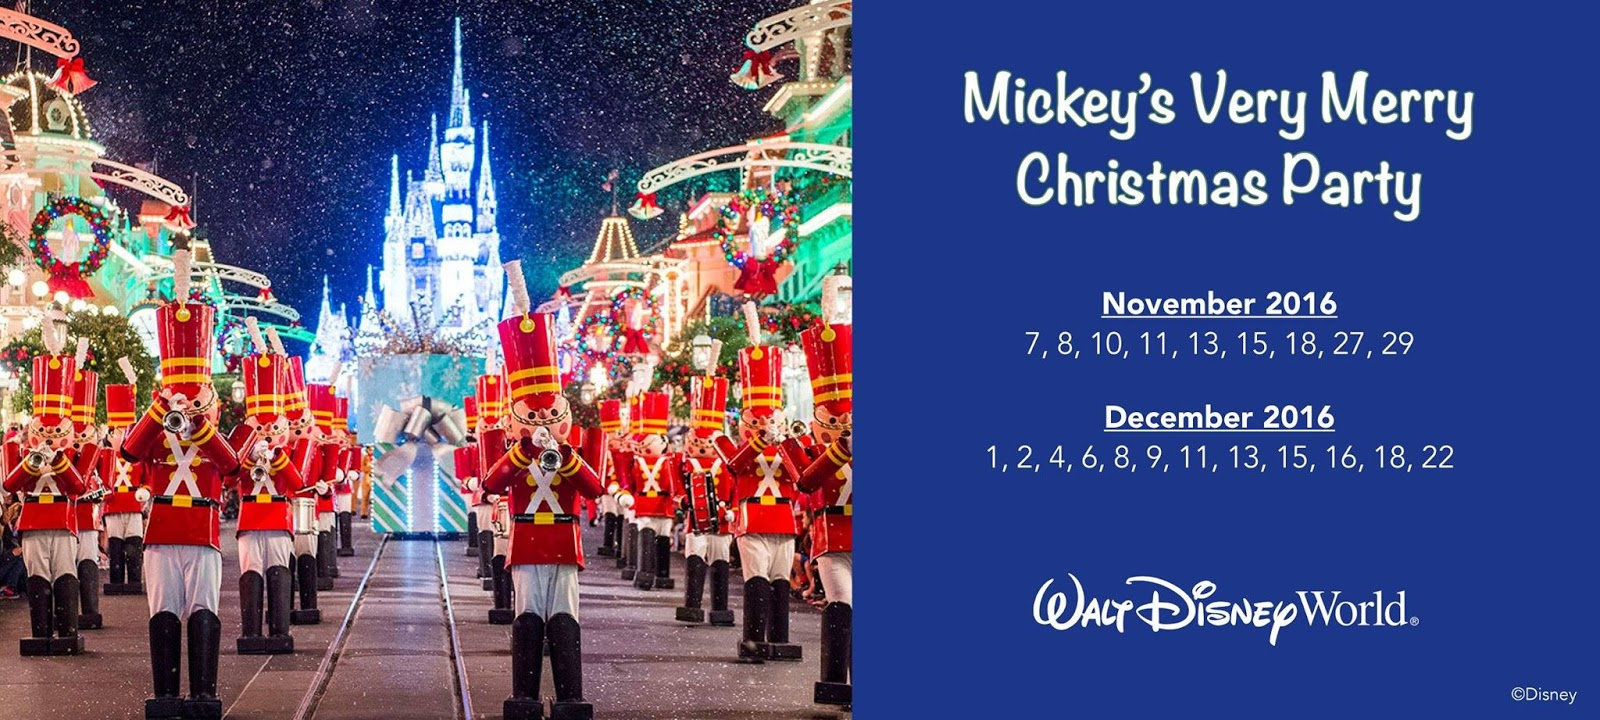 mickeys very merry christmas party 2016 dates - Mickeys Christmas Party Tickets